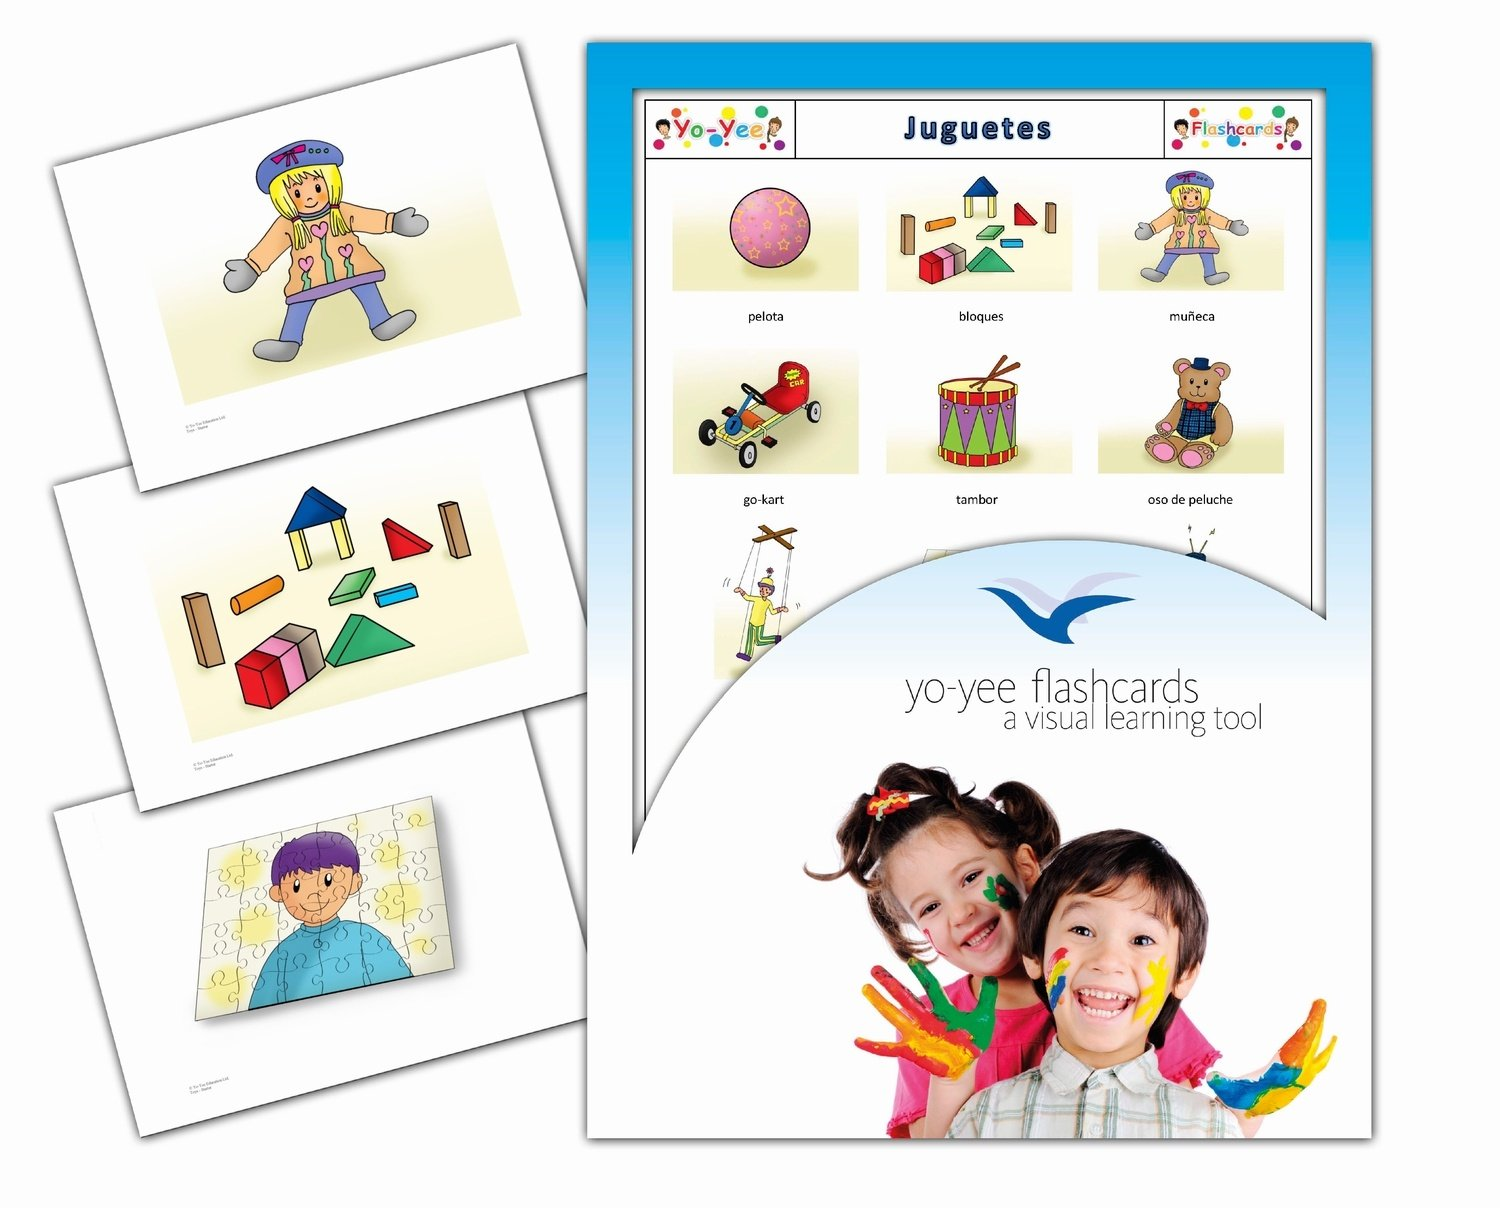 Amazon.com: Tarjetas de vocabulario - Juguetes - Toy Flashcards in Spanish: Toys & Games